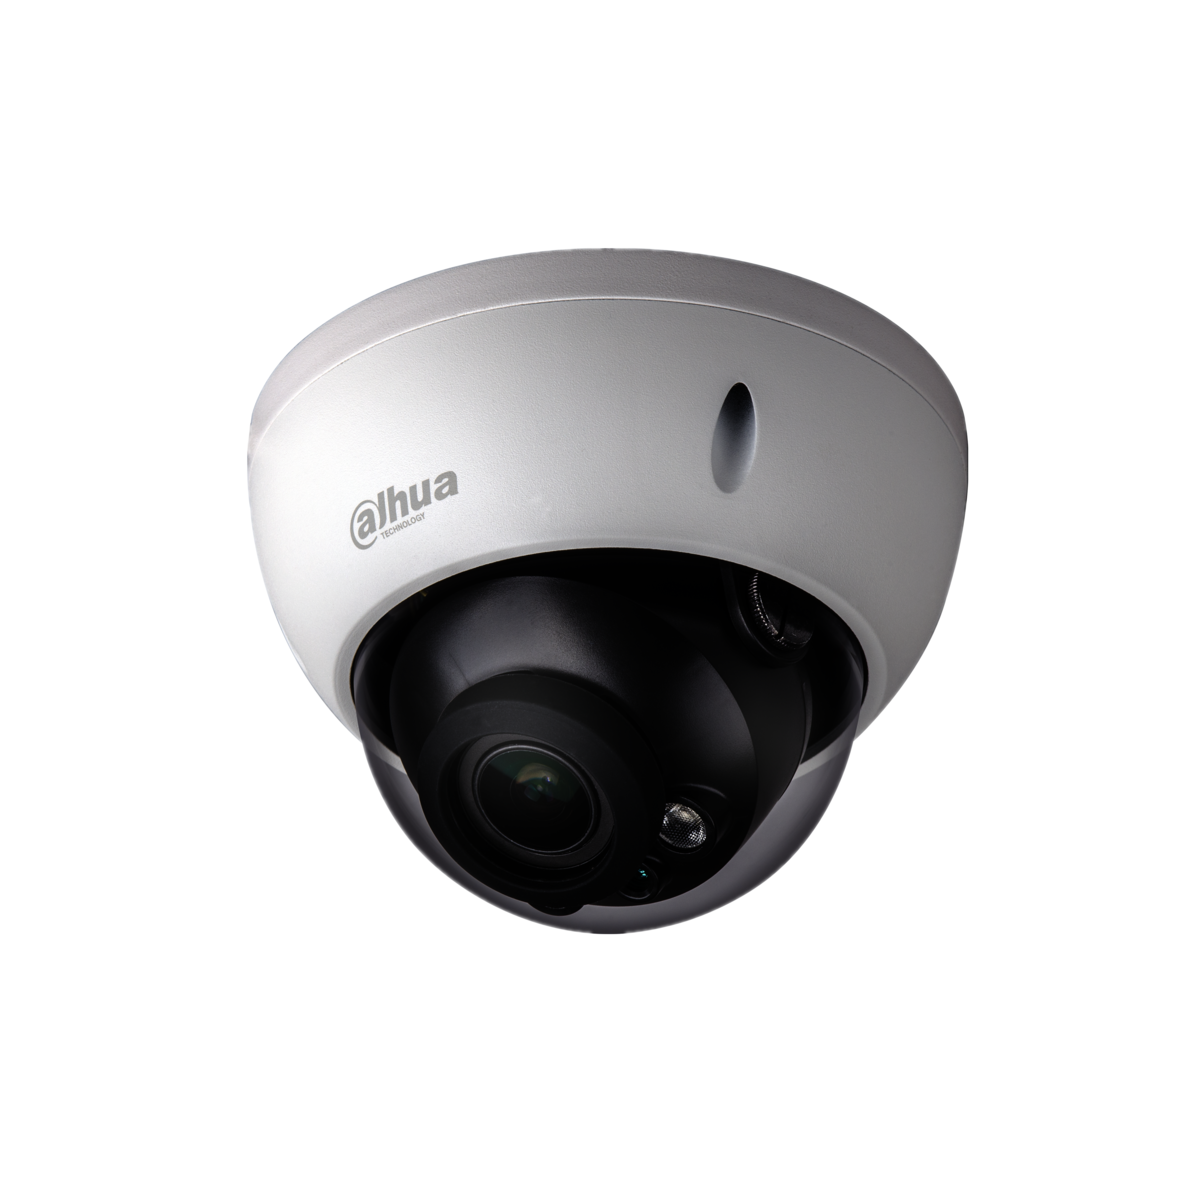 Dahua DH-IPC-HDBW2431RP-ZS-27135 4MP WDR IR Dome Network Camera